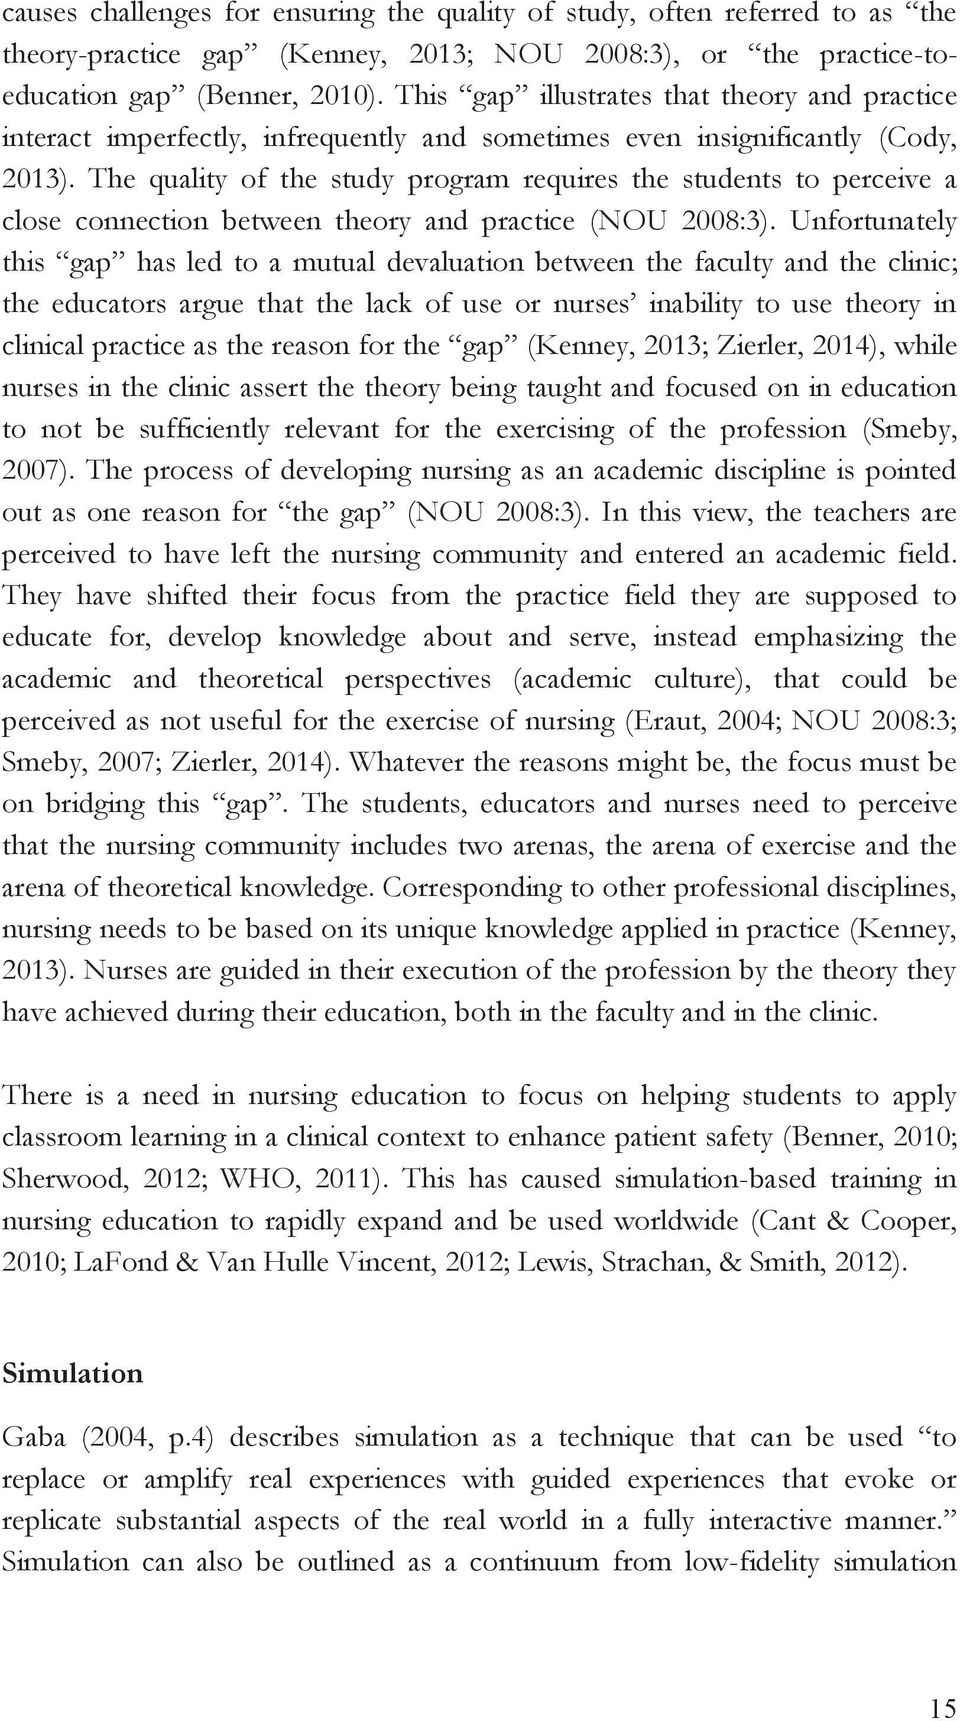 The quality of the study program requires the students to perceive a close connection between theory and practice (NOU 2008:3).